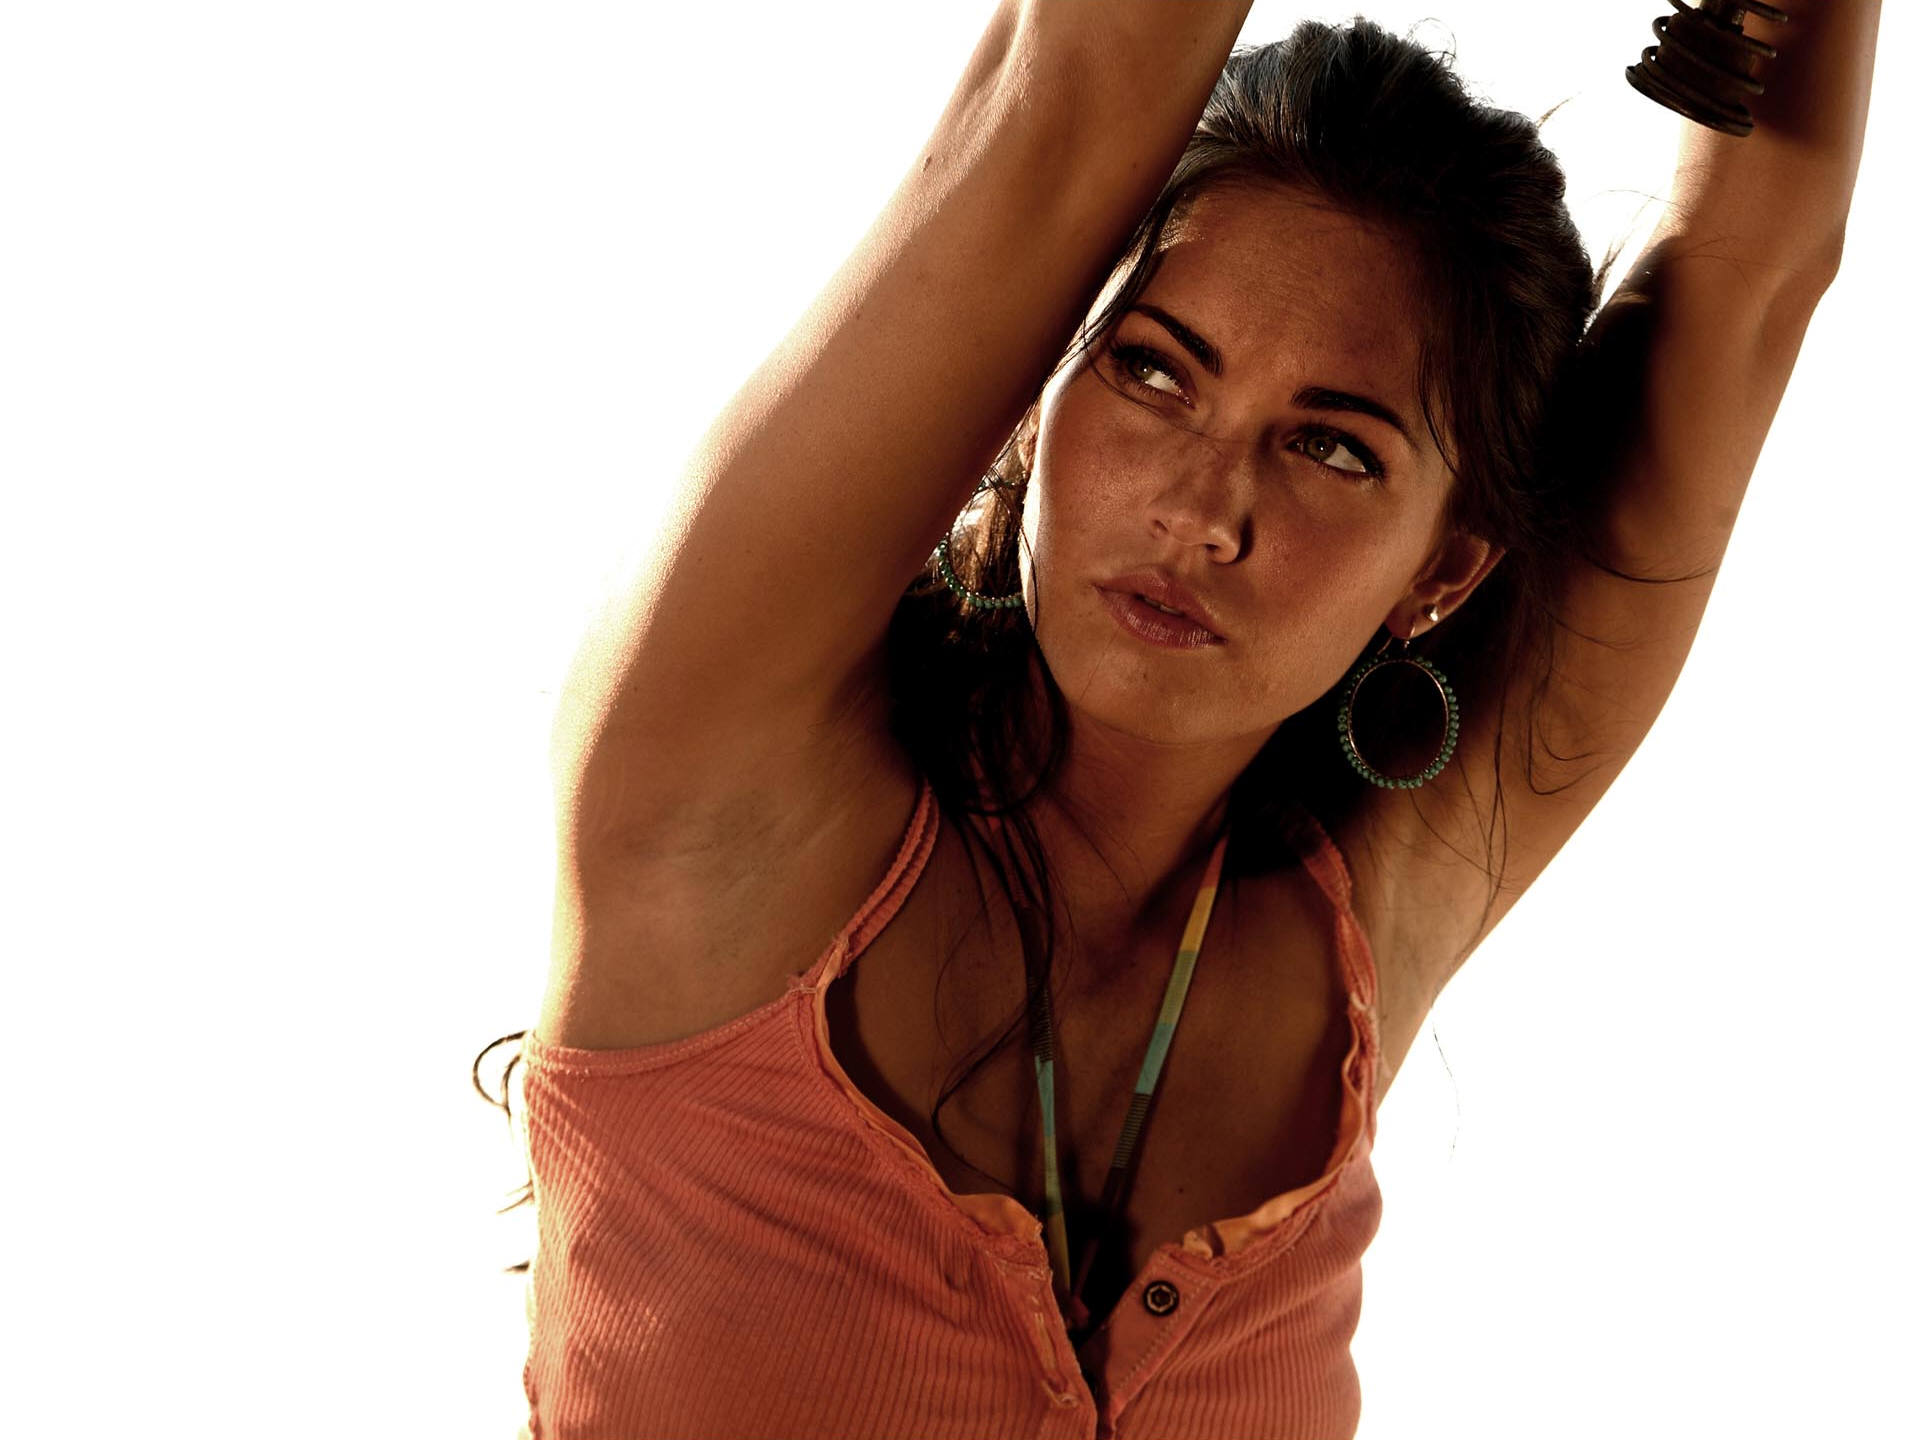 Megan Fox (22) 165.14 Kb